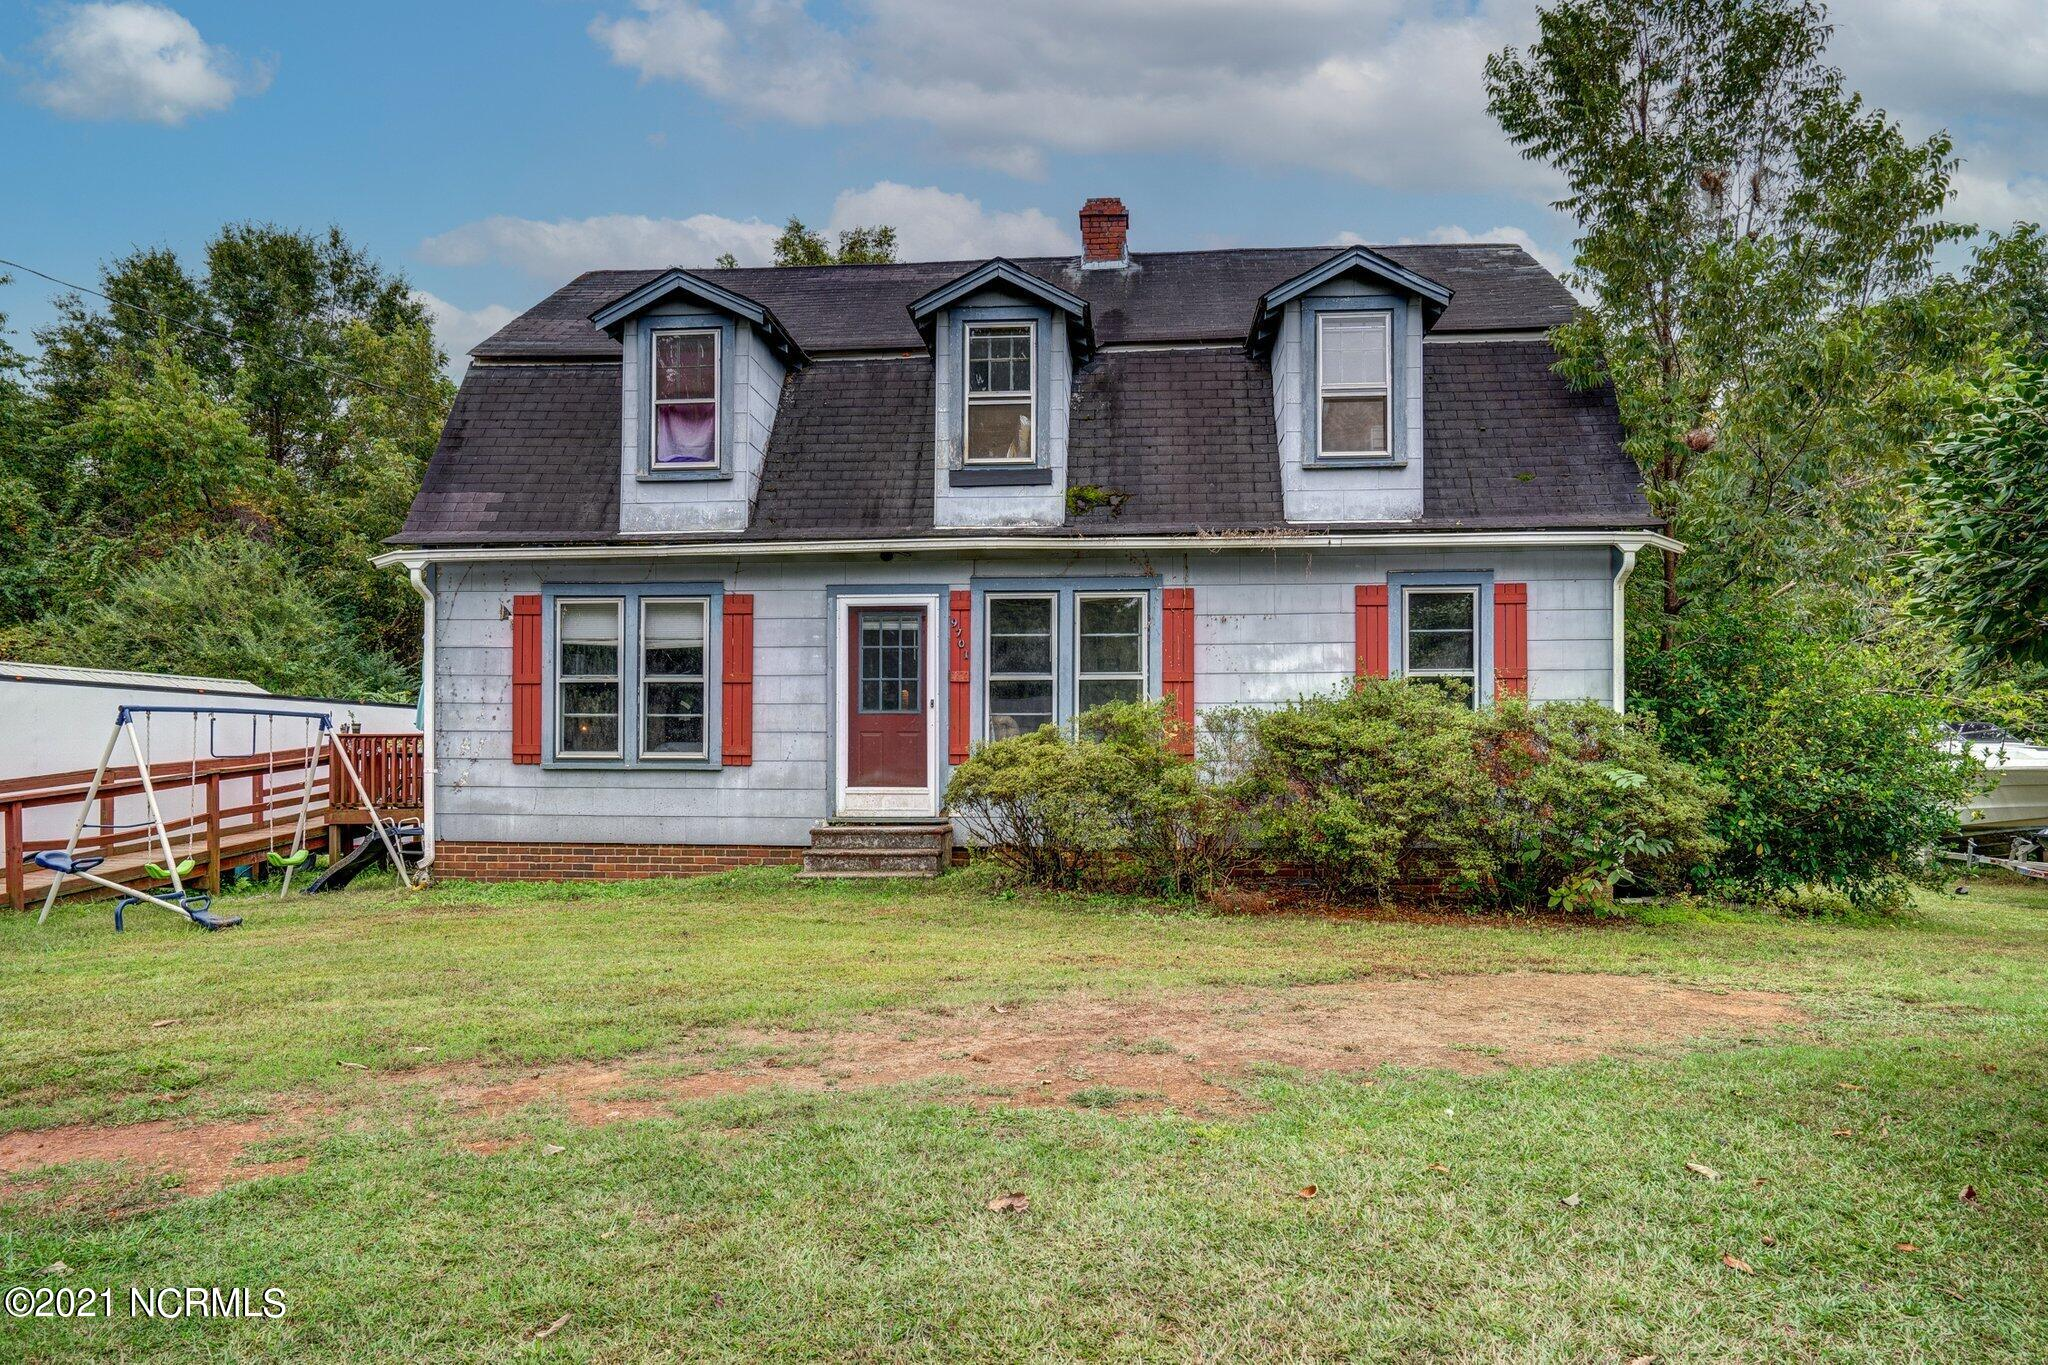 9701 Nc 97, Middlesex, NC 27557